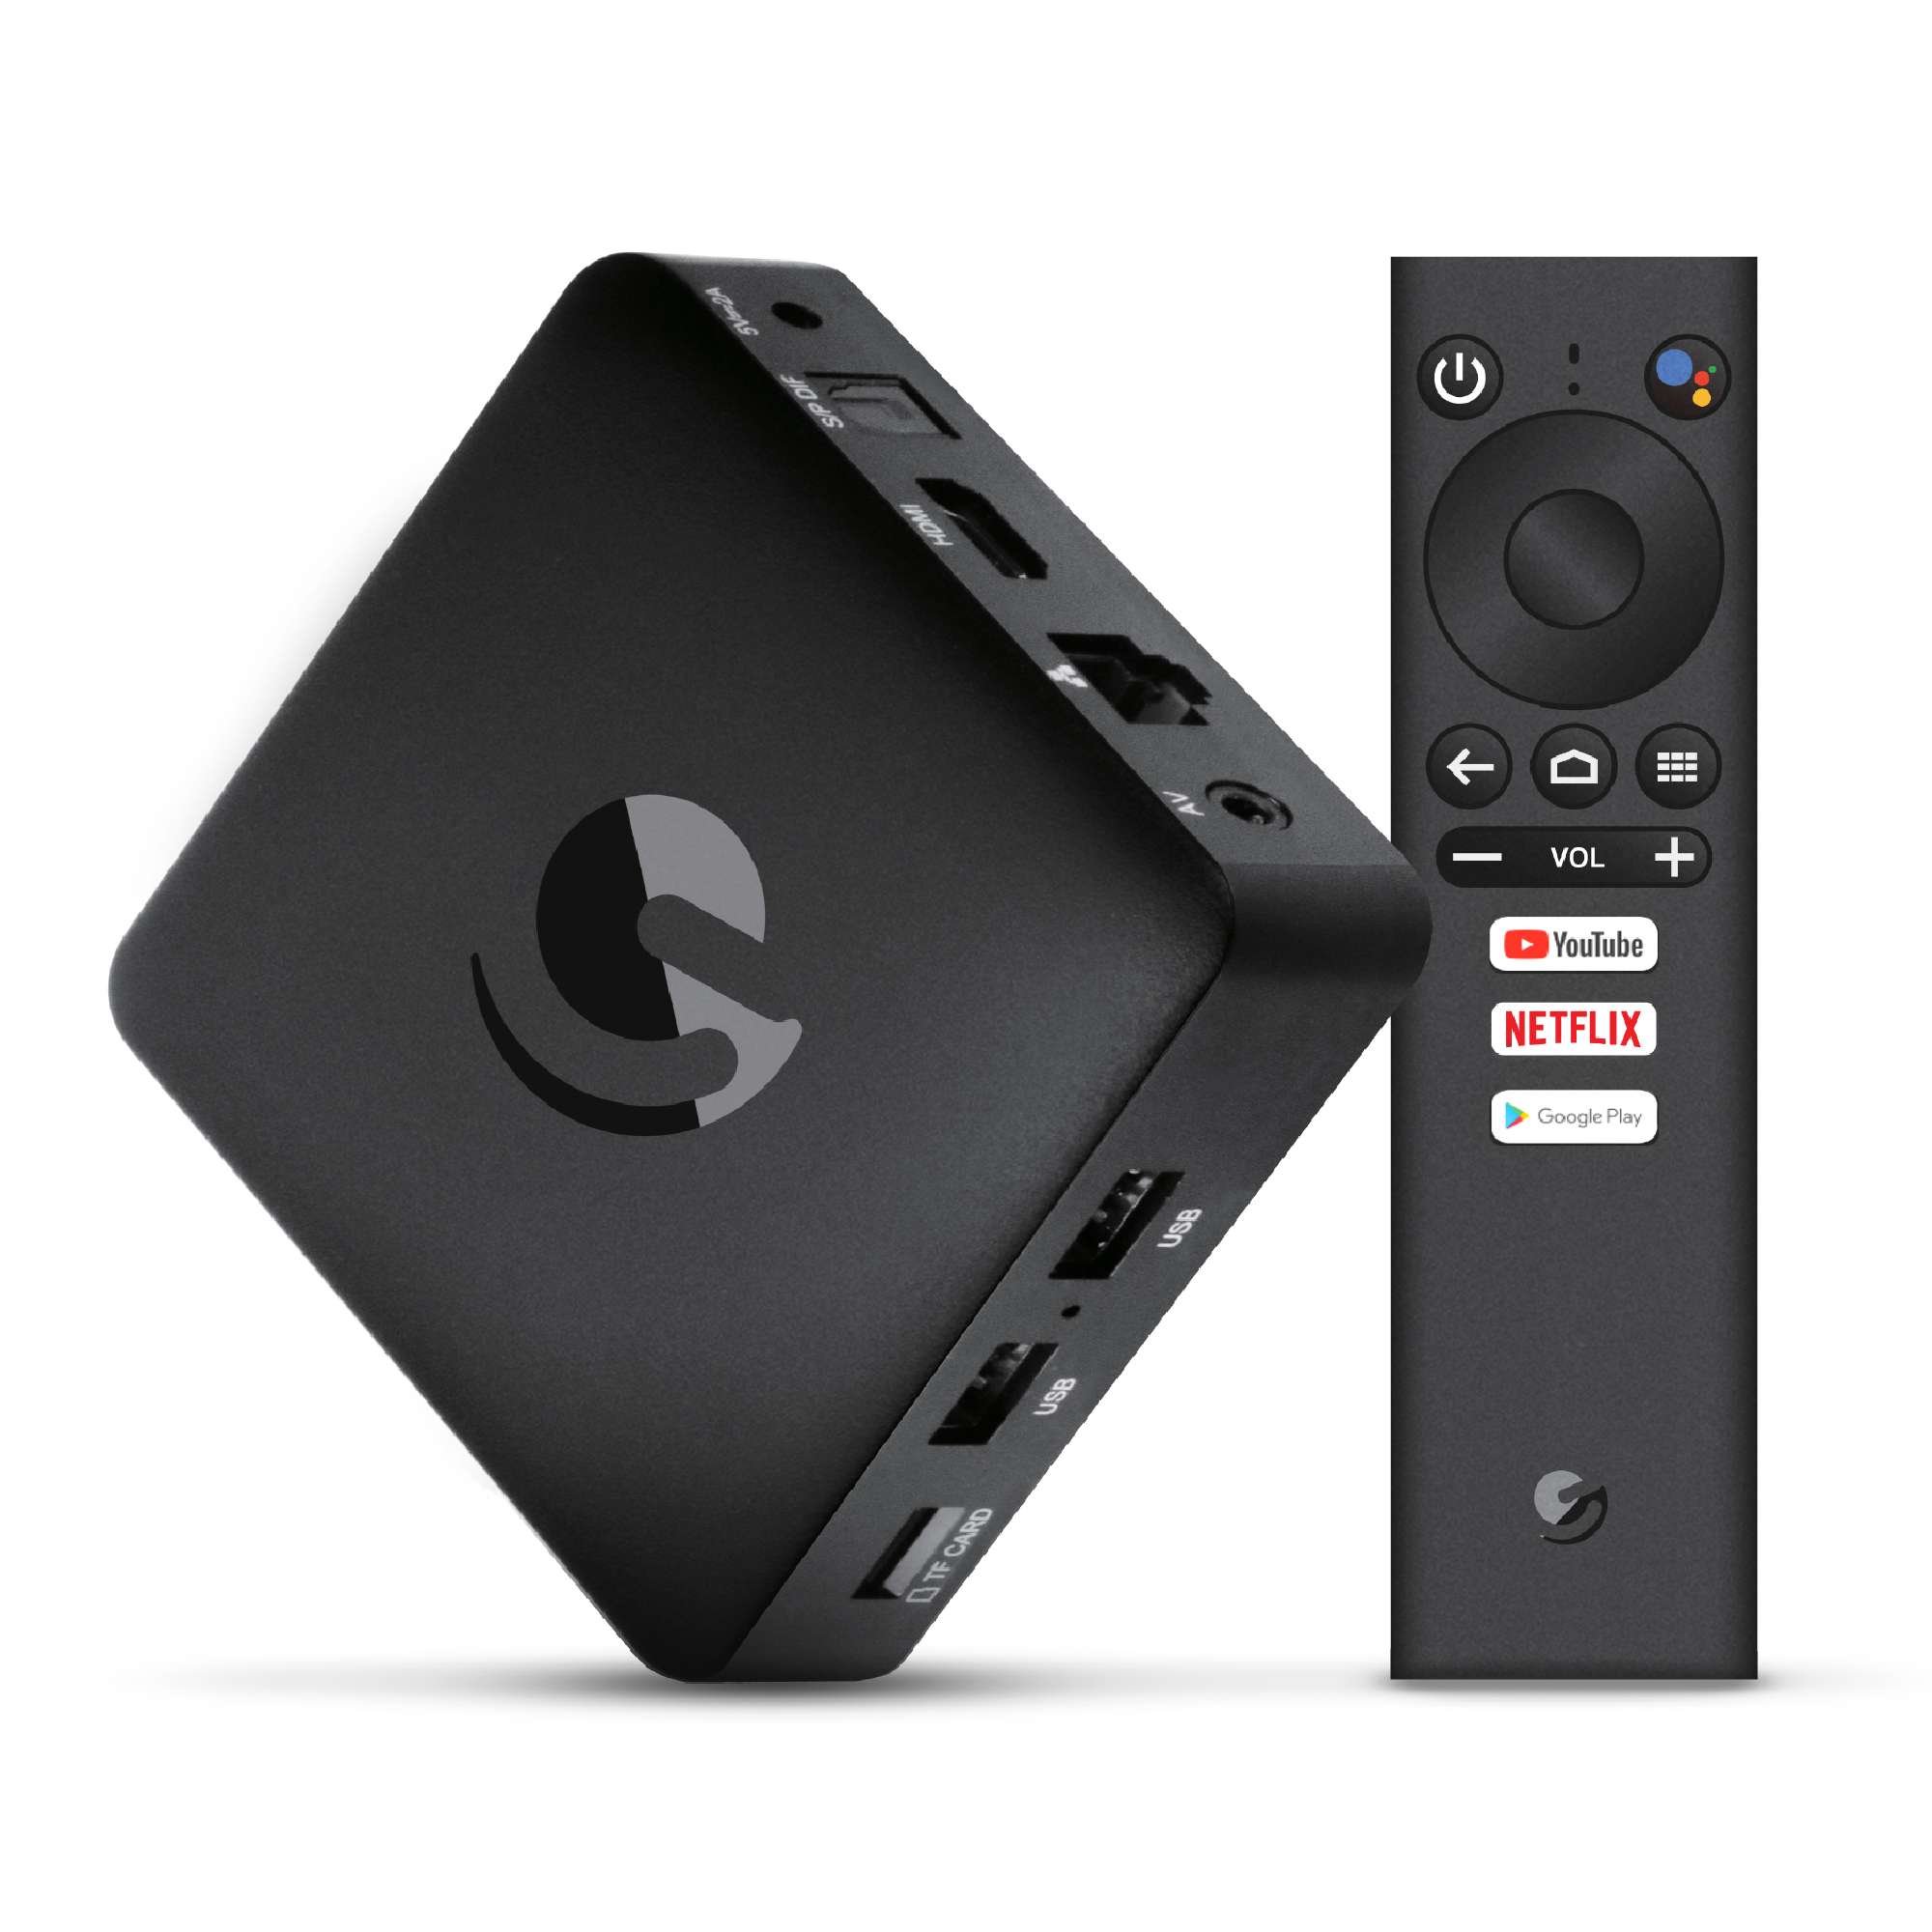 Walmart Starts Selling a New Android TV Box Called Jetstream